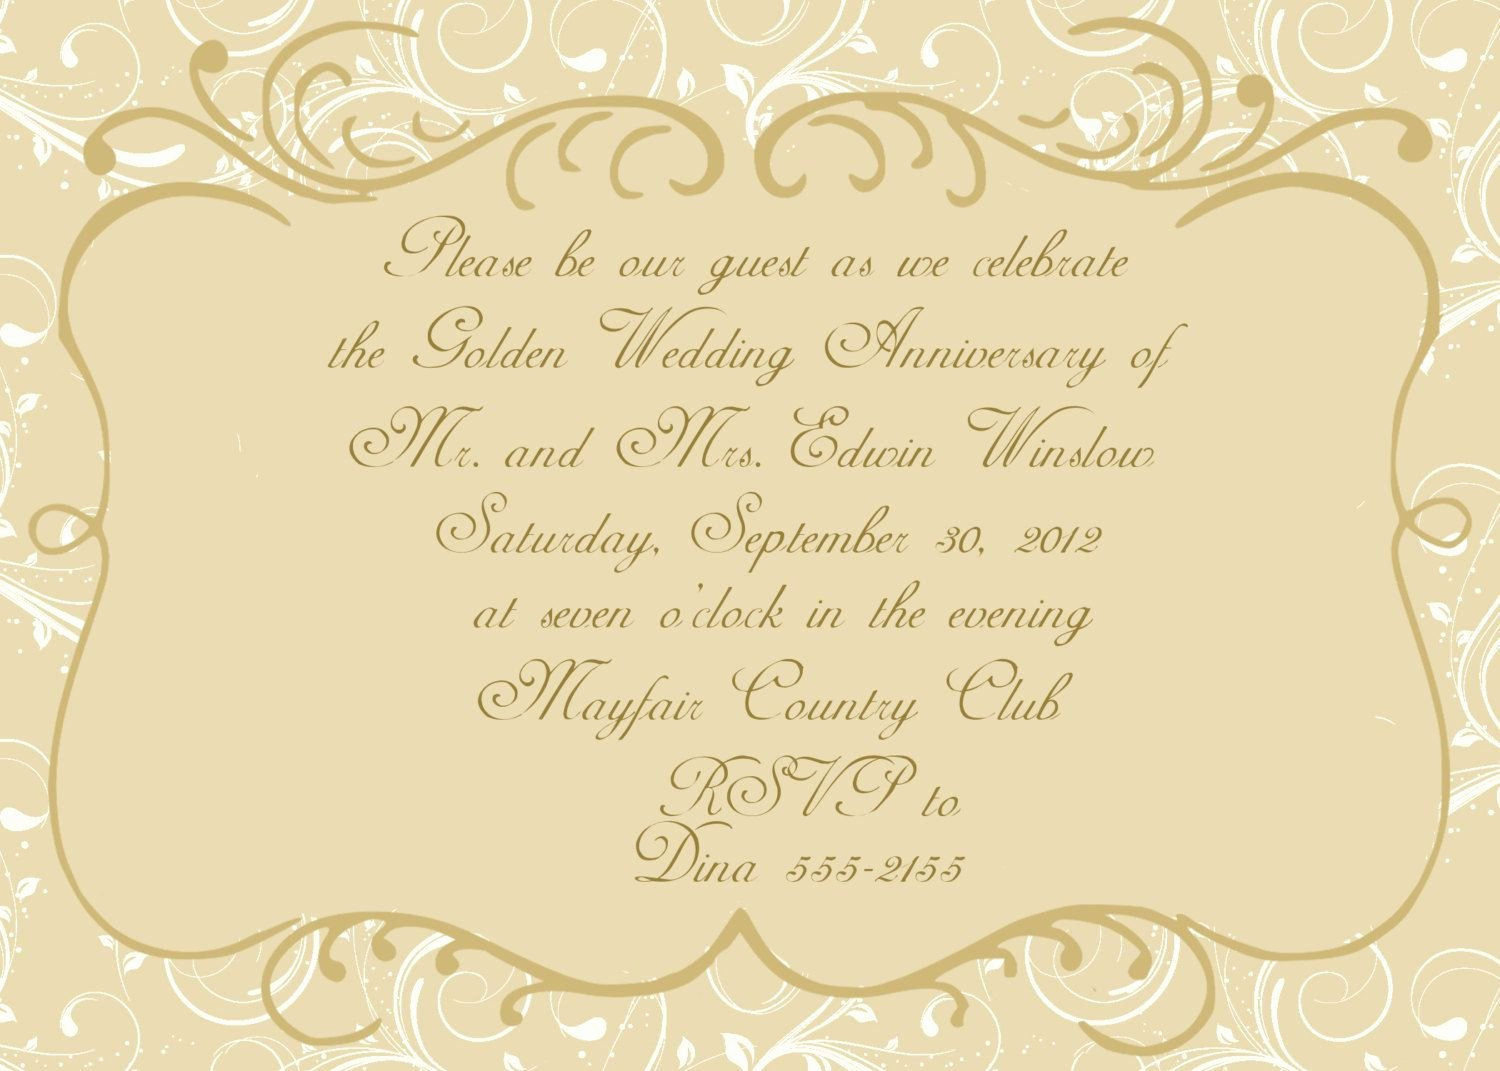 Wedding Anniversary Invite Template Fresh Anniversary Invitations Golden Wedding Anniversary